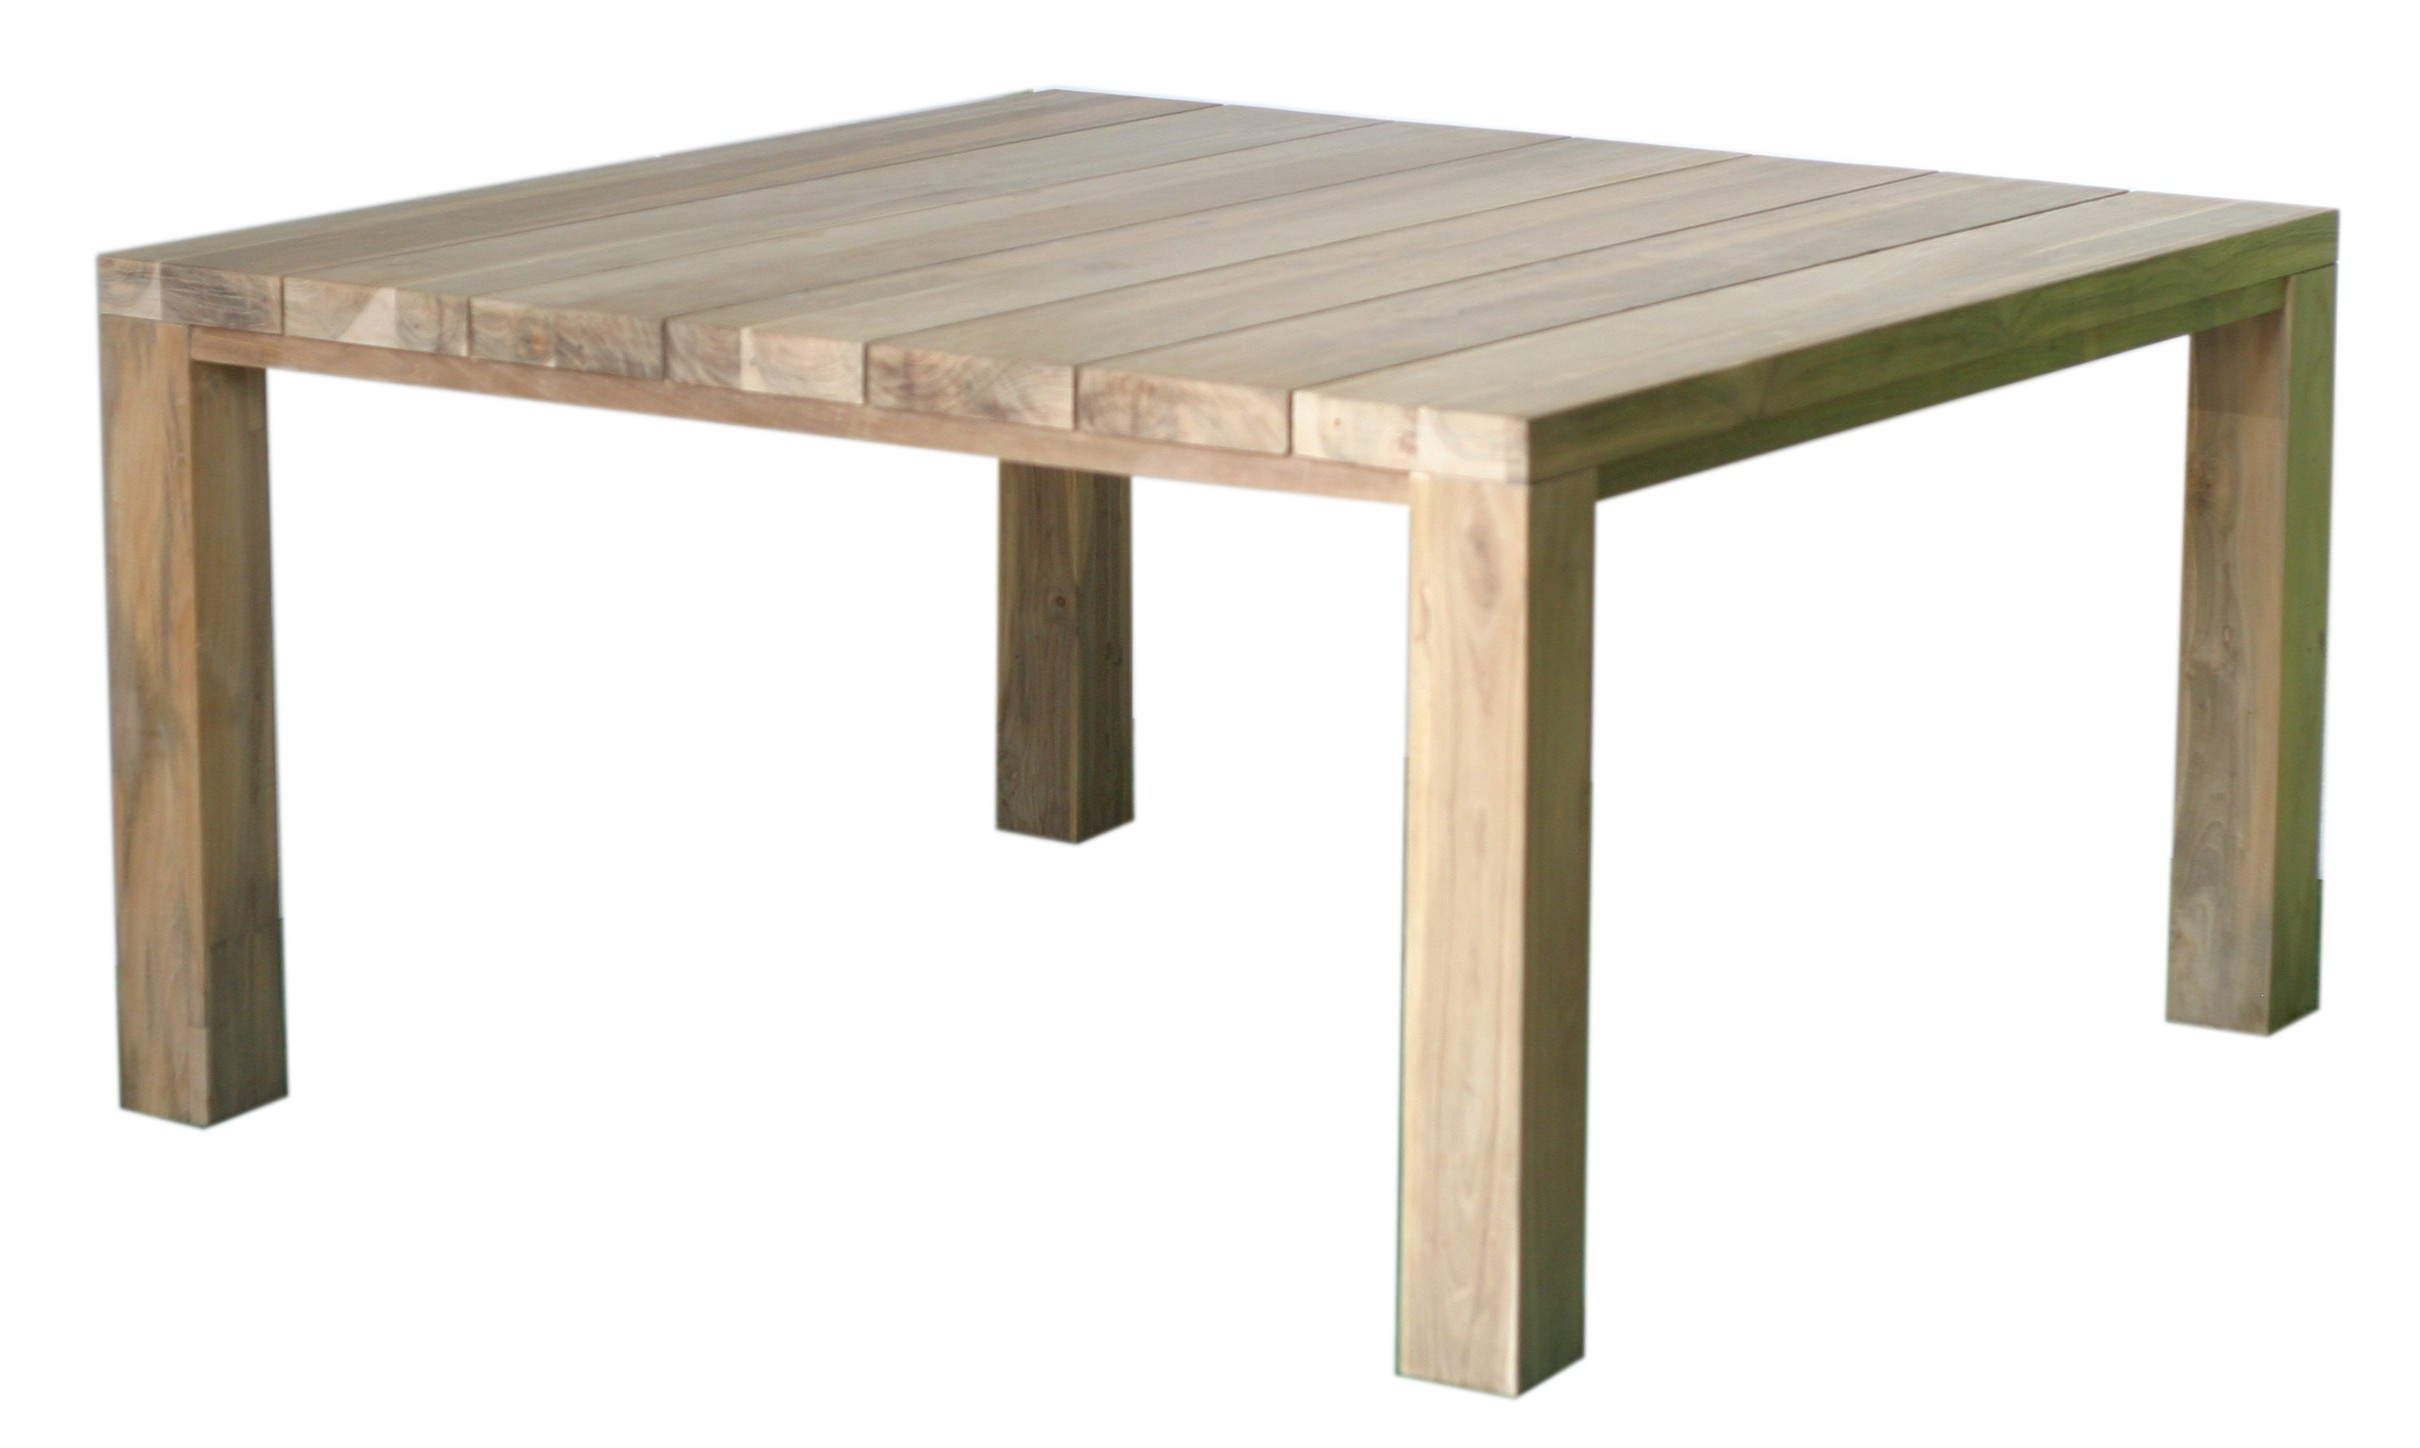 Grande table de jardin carree des id es - Table teck carree ...